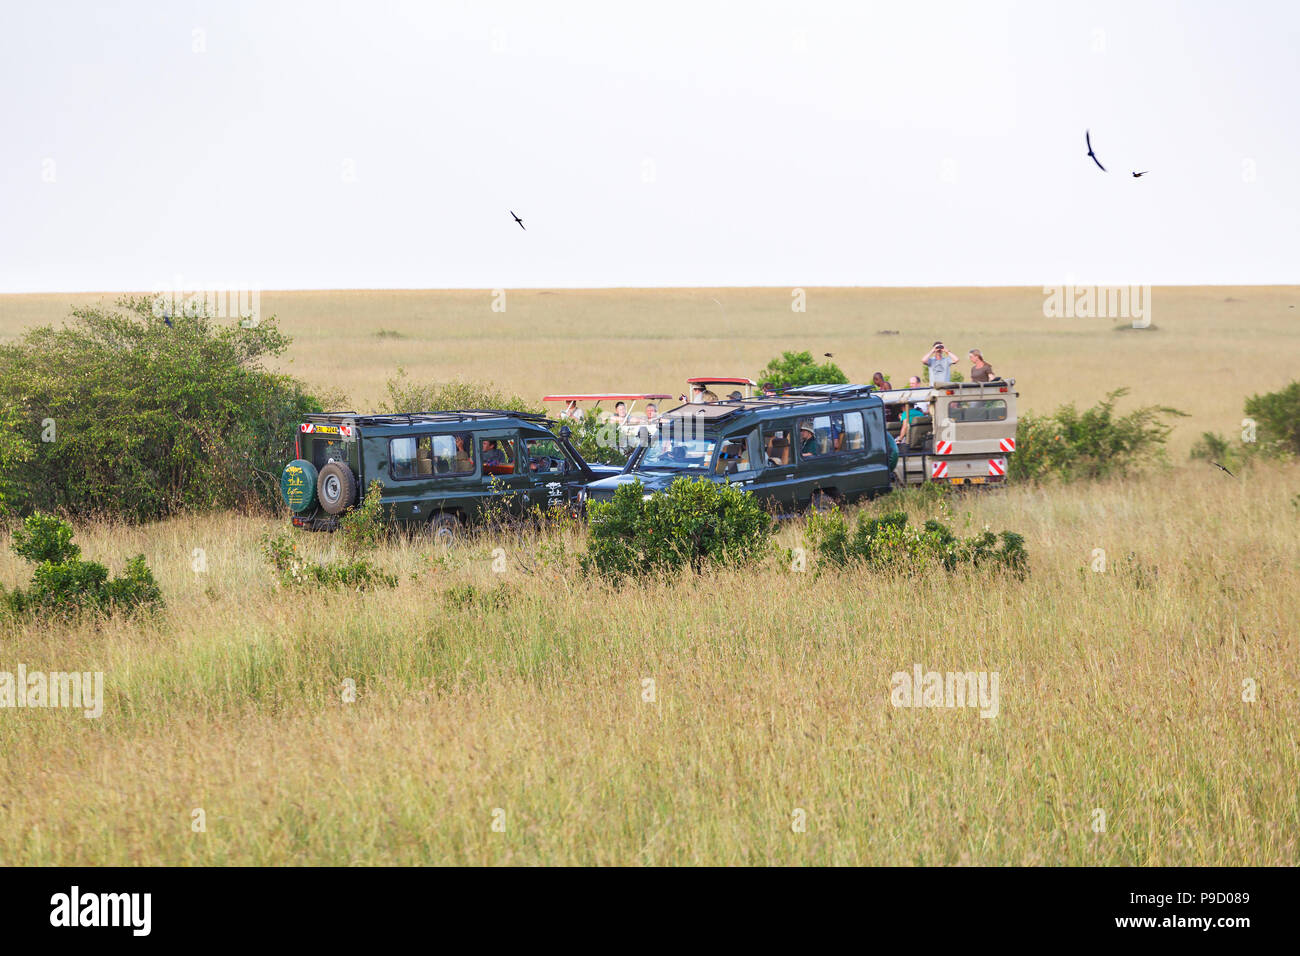 Safari game drive with tourists on the savannah in Africa - Stock Image